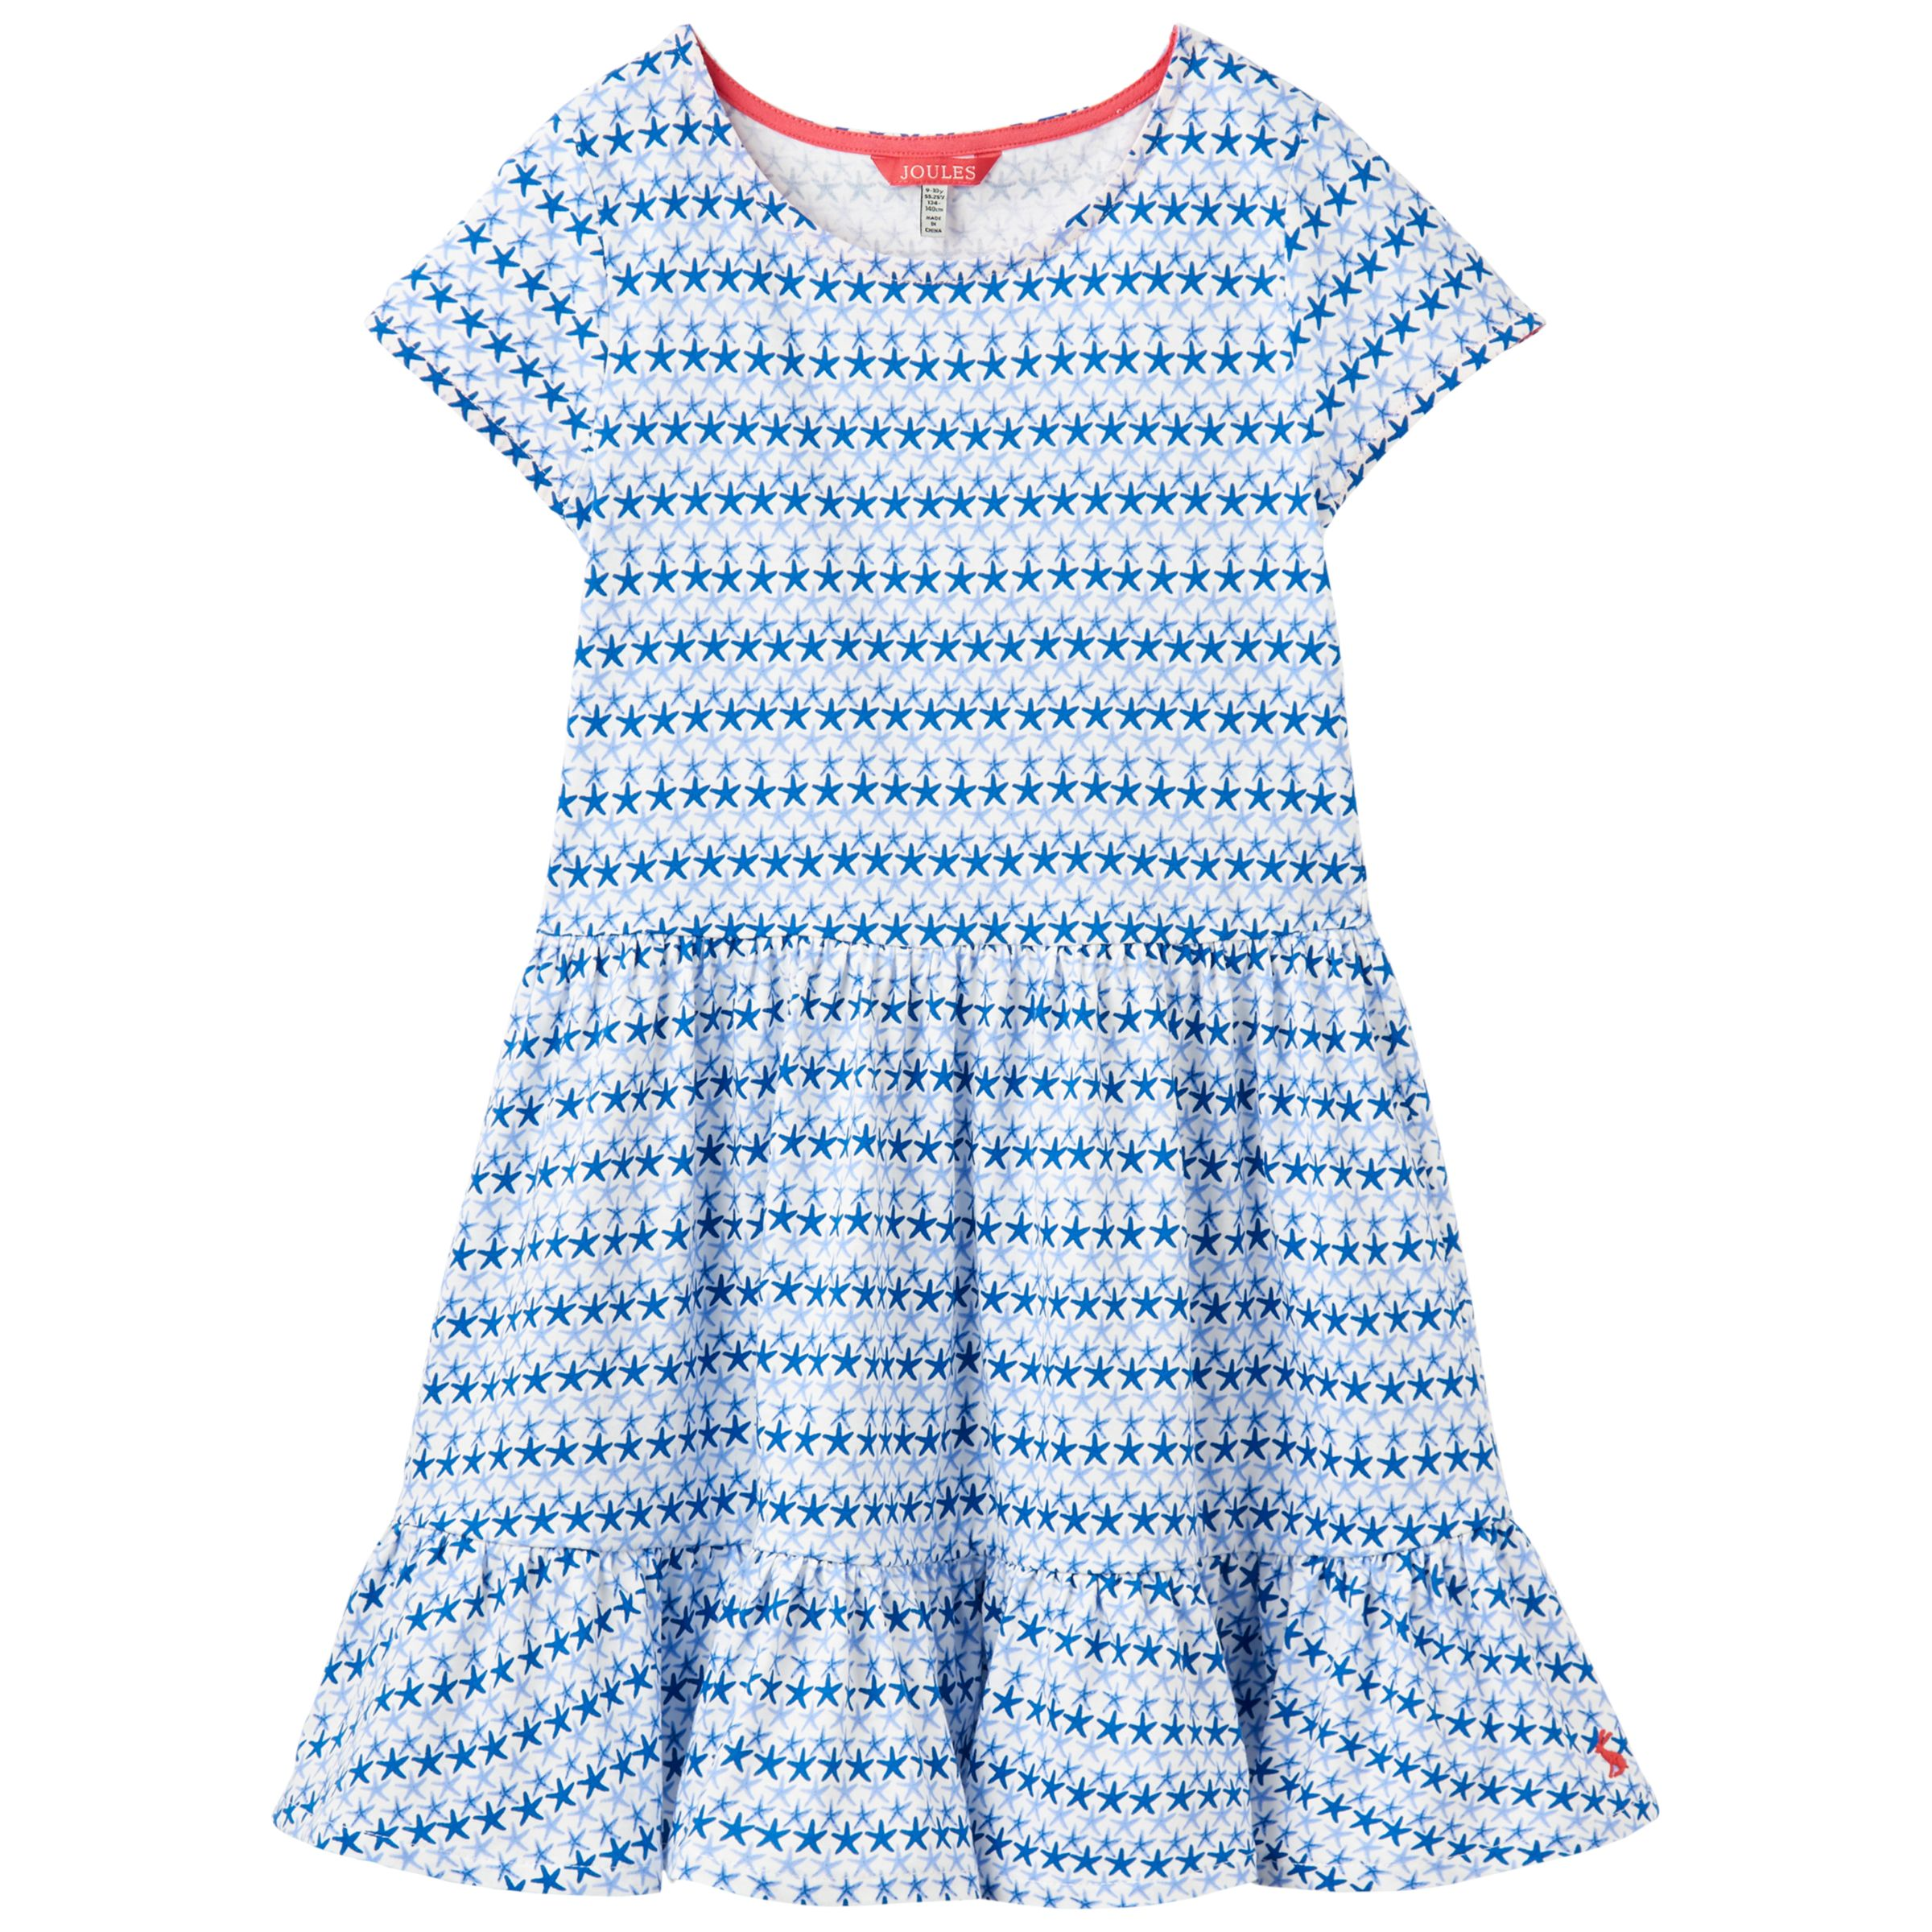 Joules Coco Starfish Dress in Blue.jpg